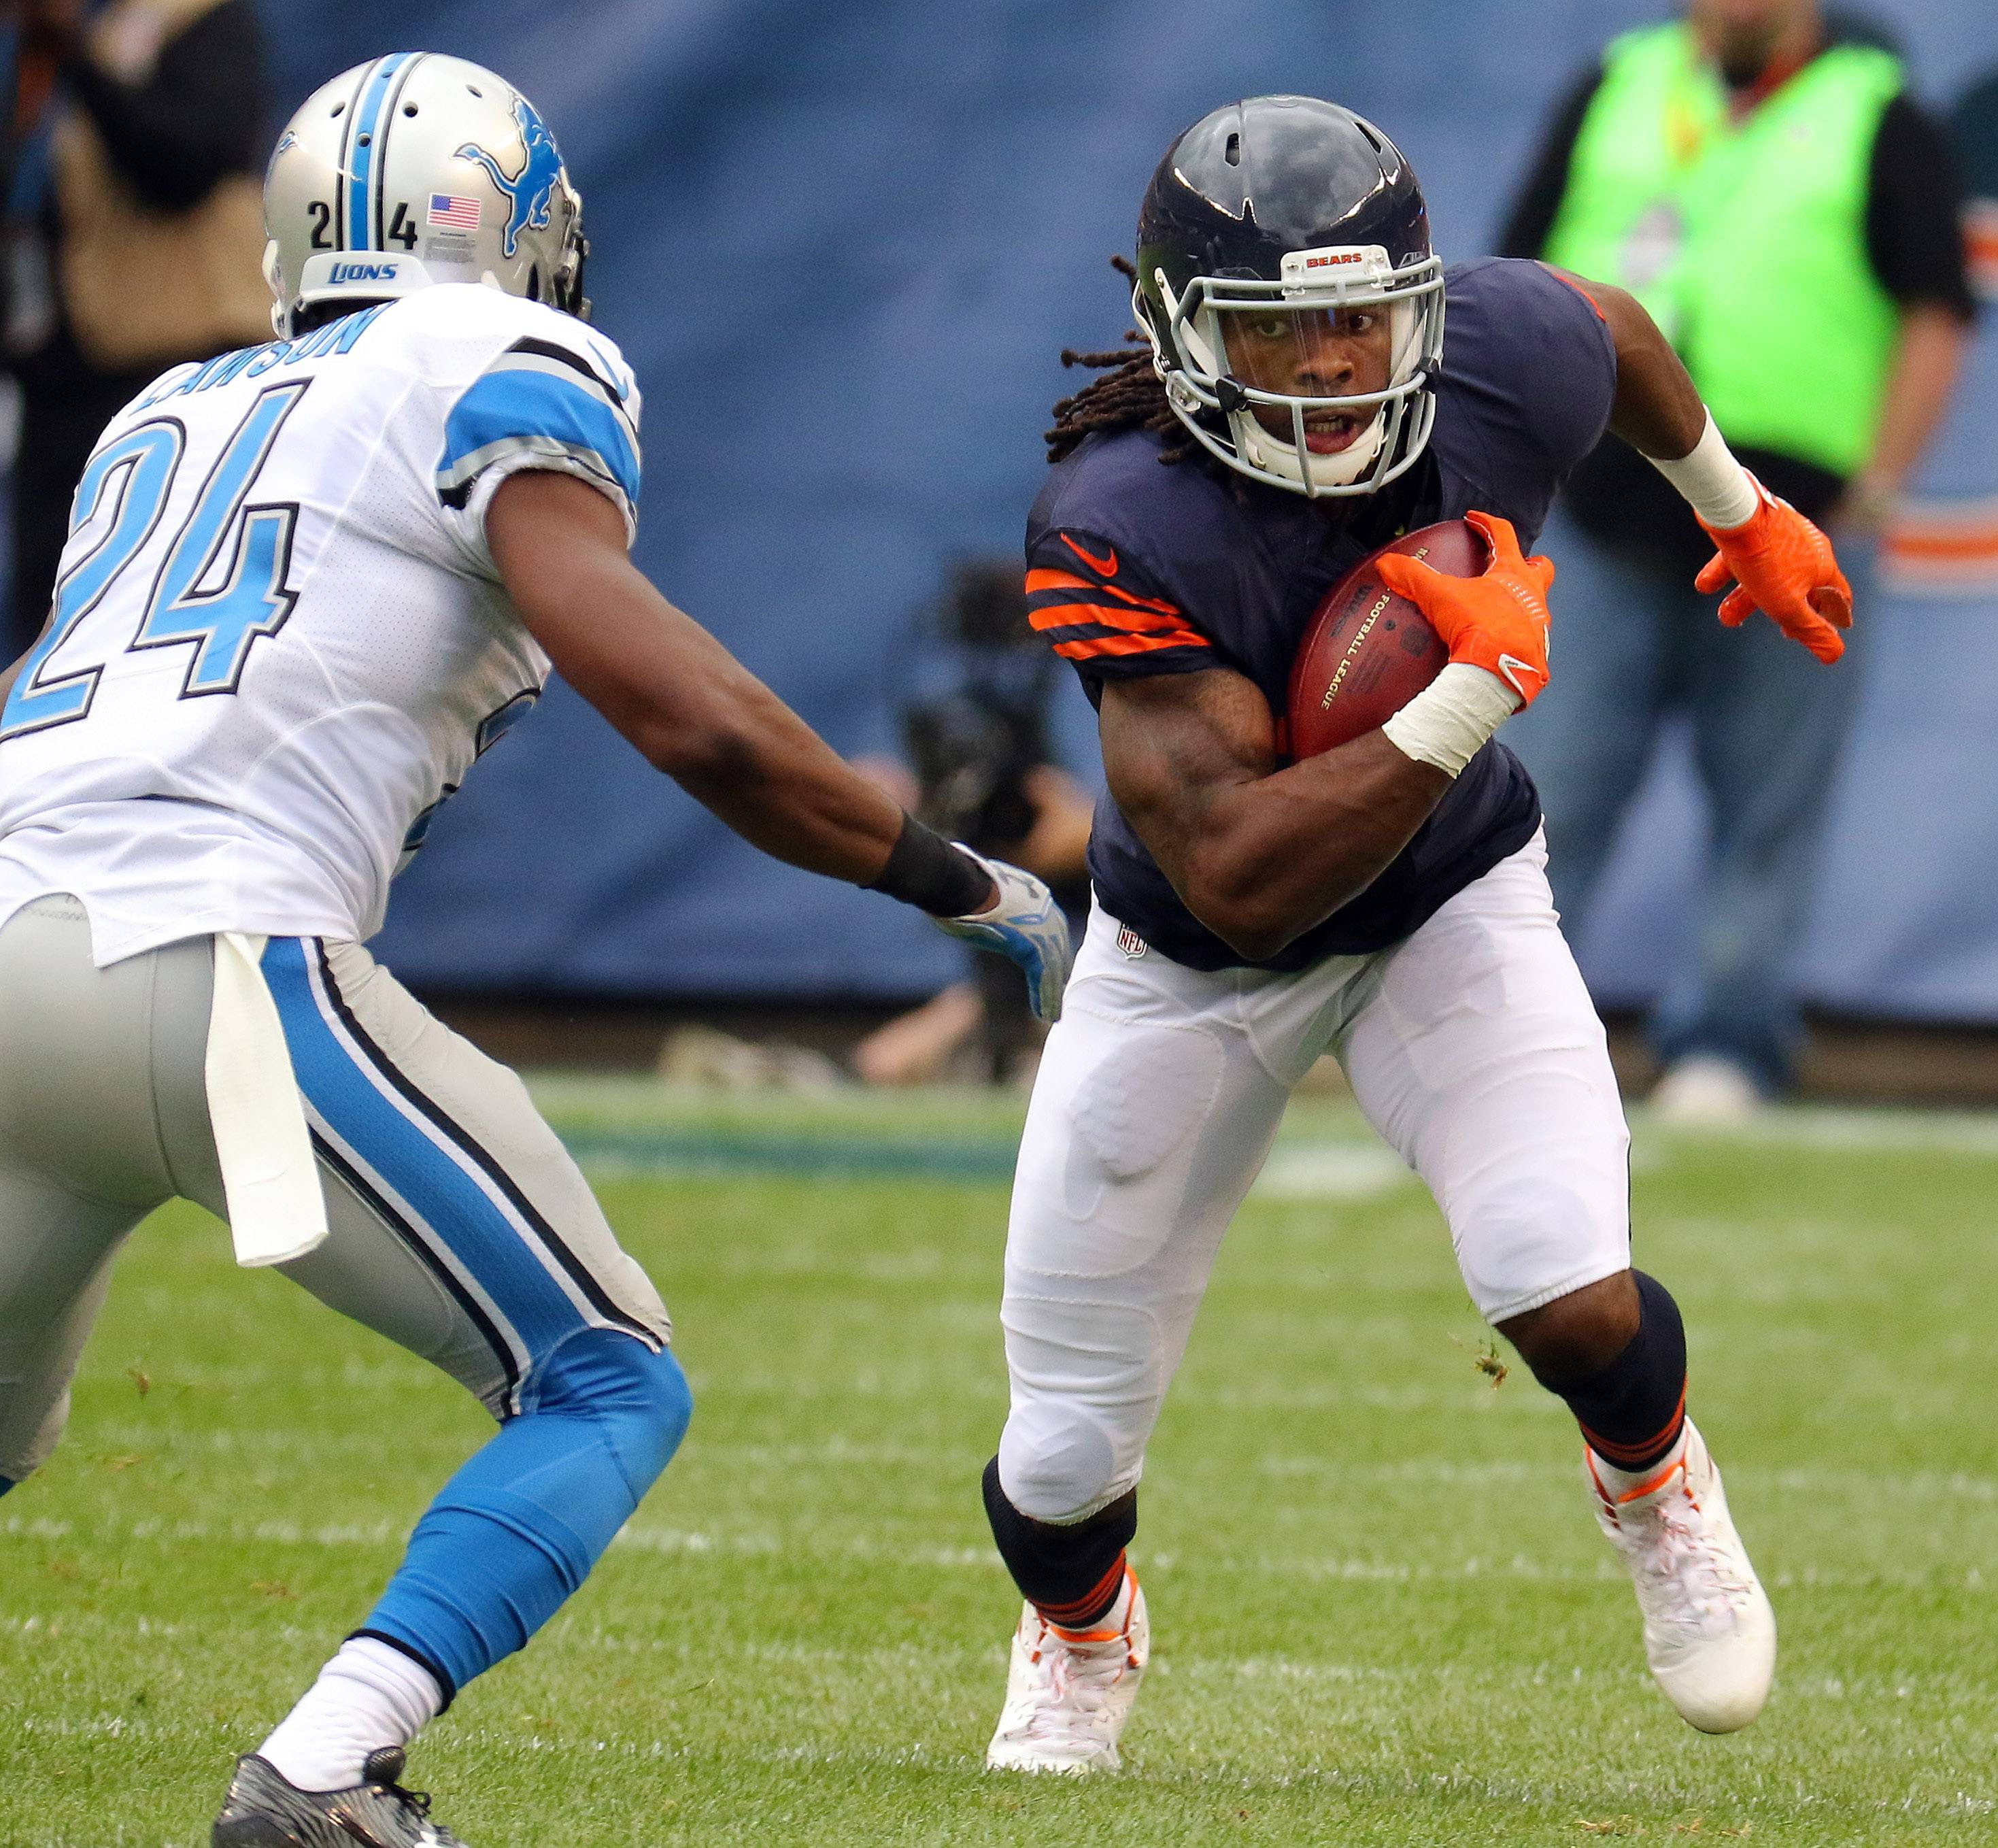 The Chicago Bears are being cautious with wide receiver Kevin White, who has been slowed by injuries his first two NFL seasons.